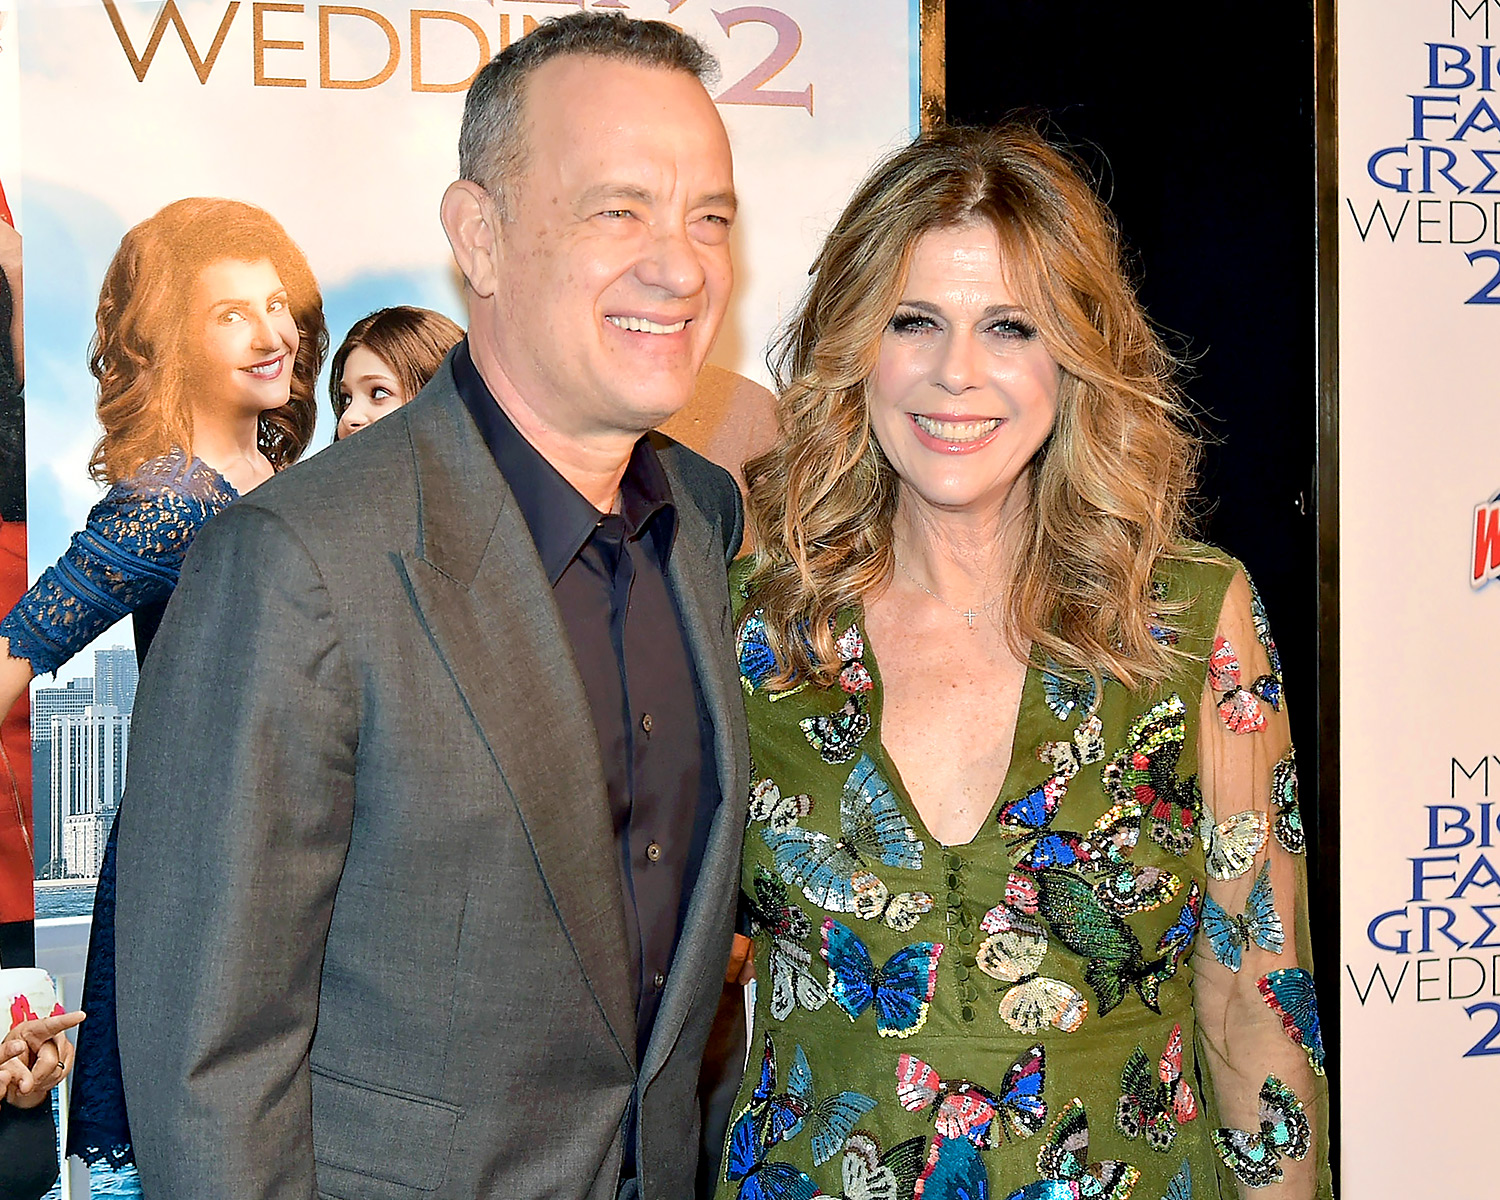 My Big Fat Greek Wedding 2.Tom Hanks Rita Wilson Talk My Big Fat Greek Wedding 2